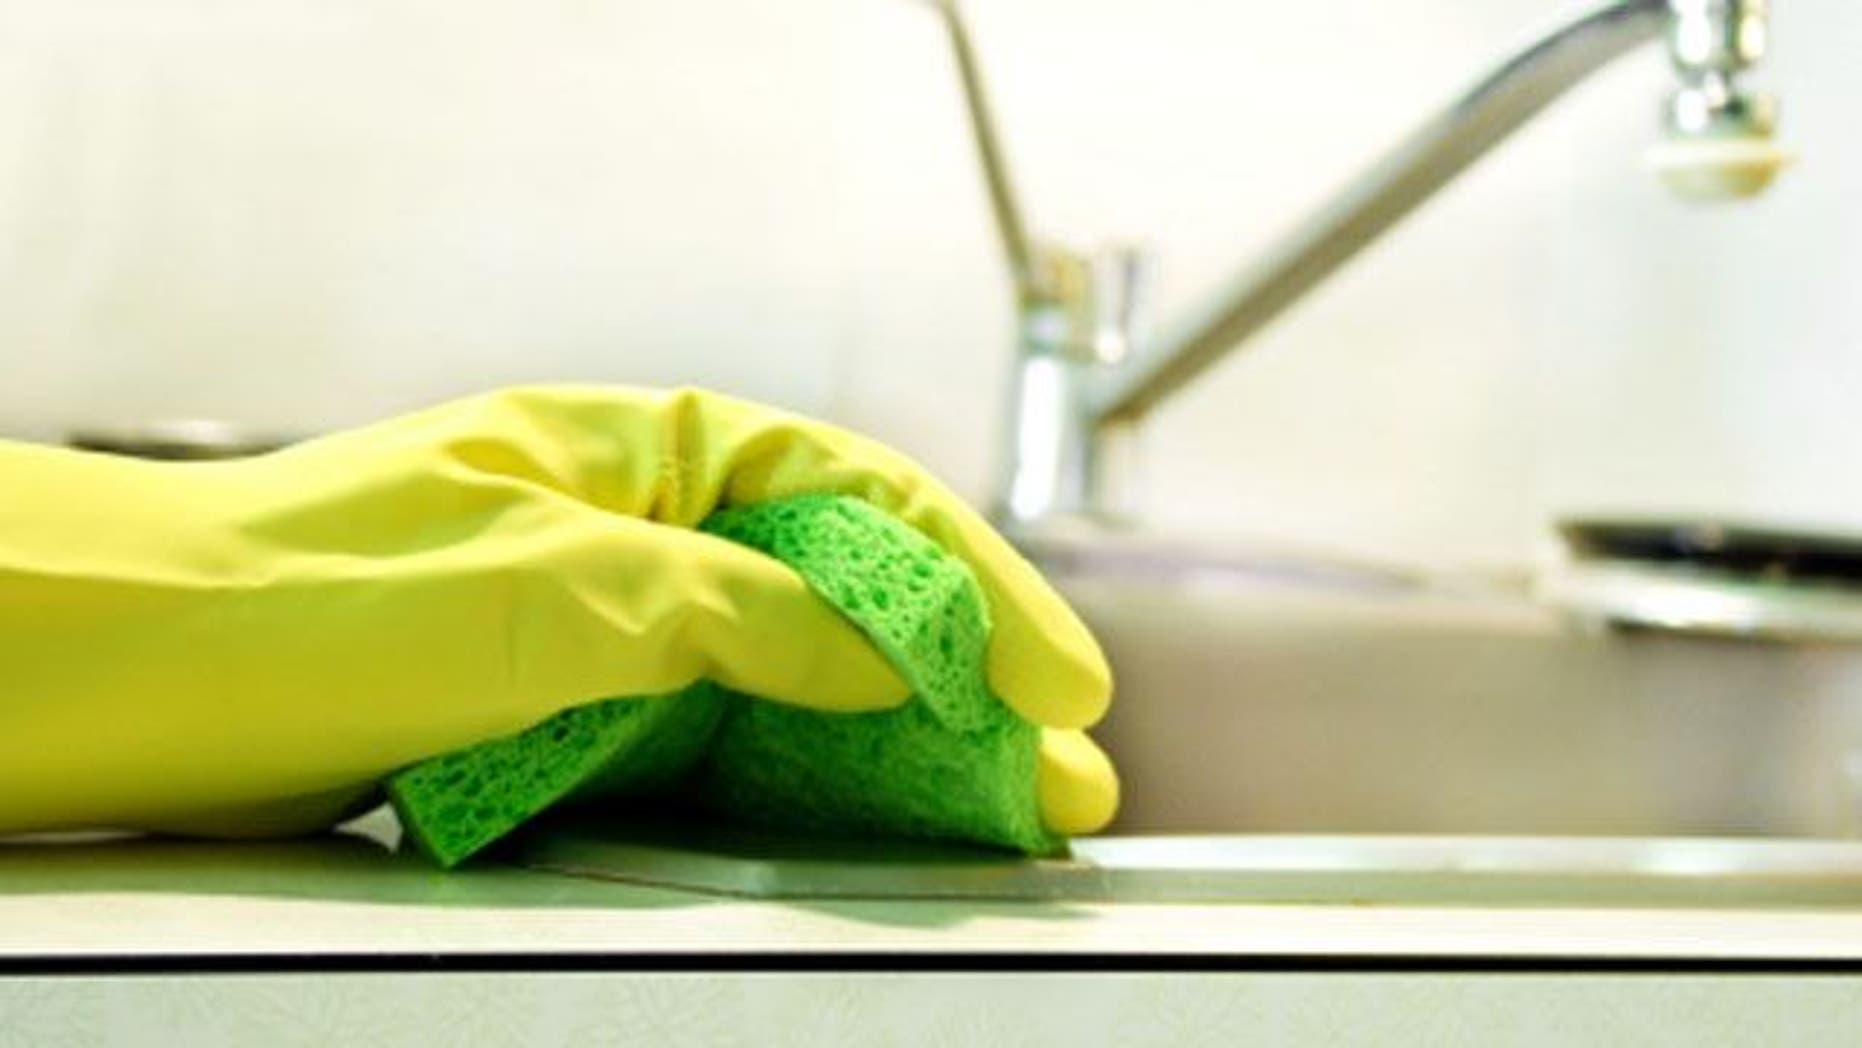 20 things you should throw away for better health   Fox News